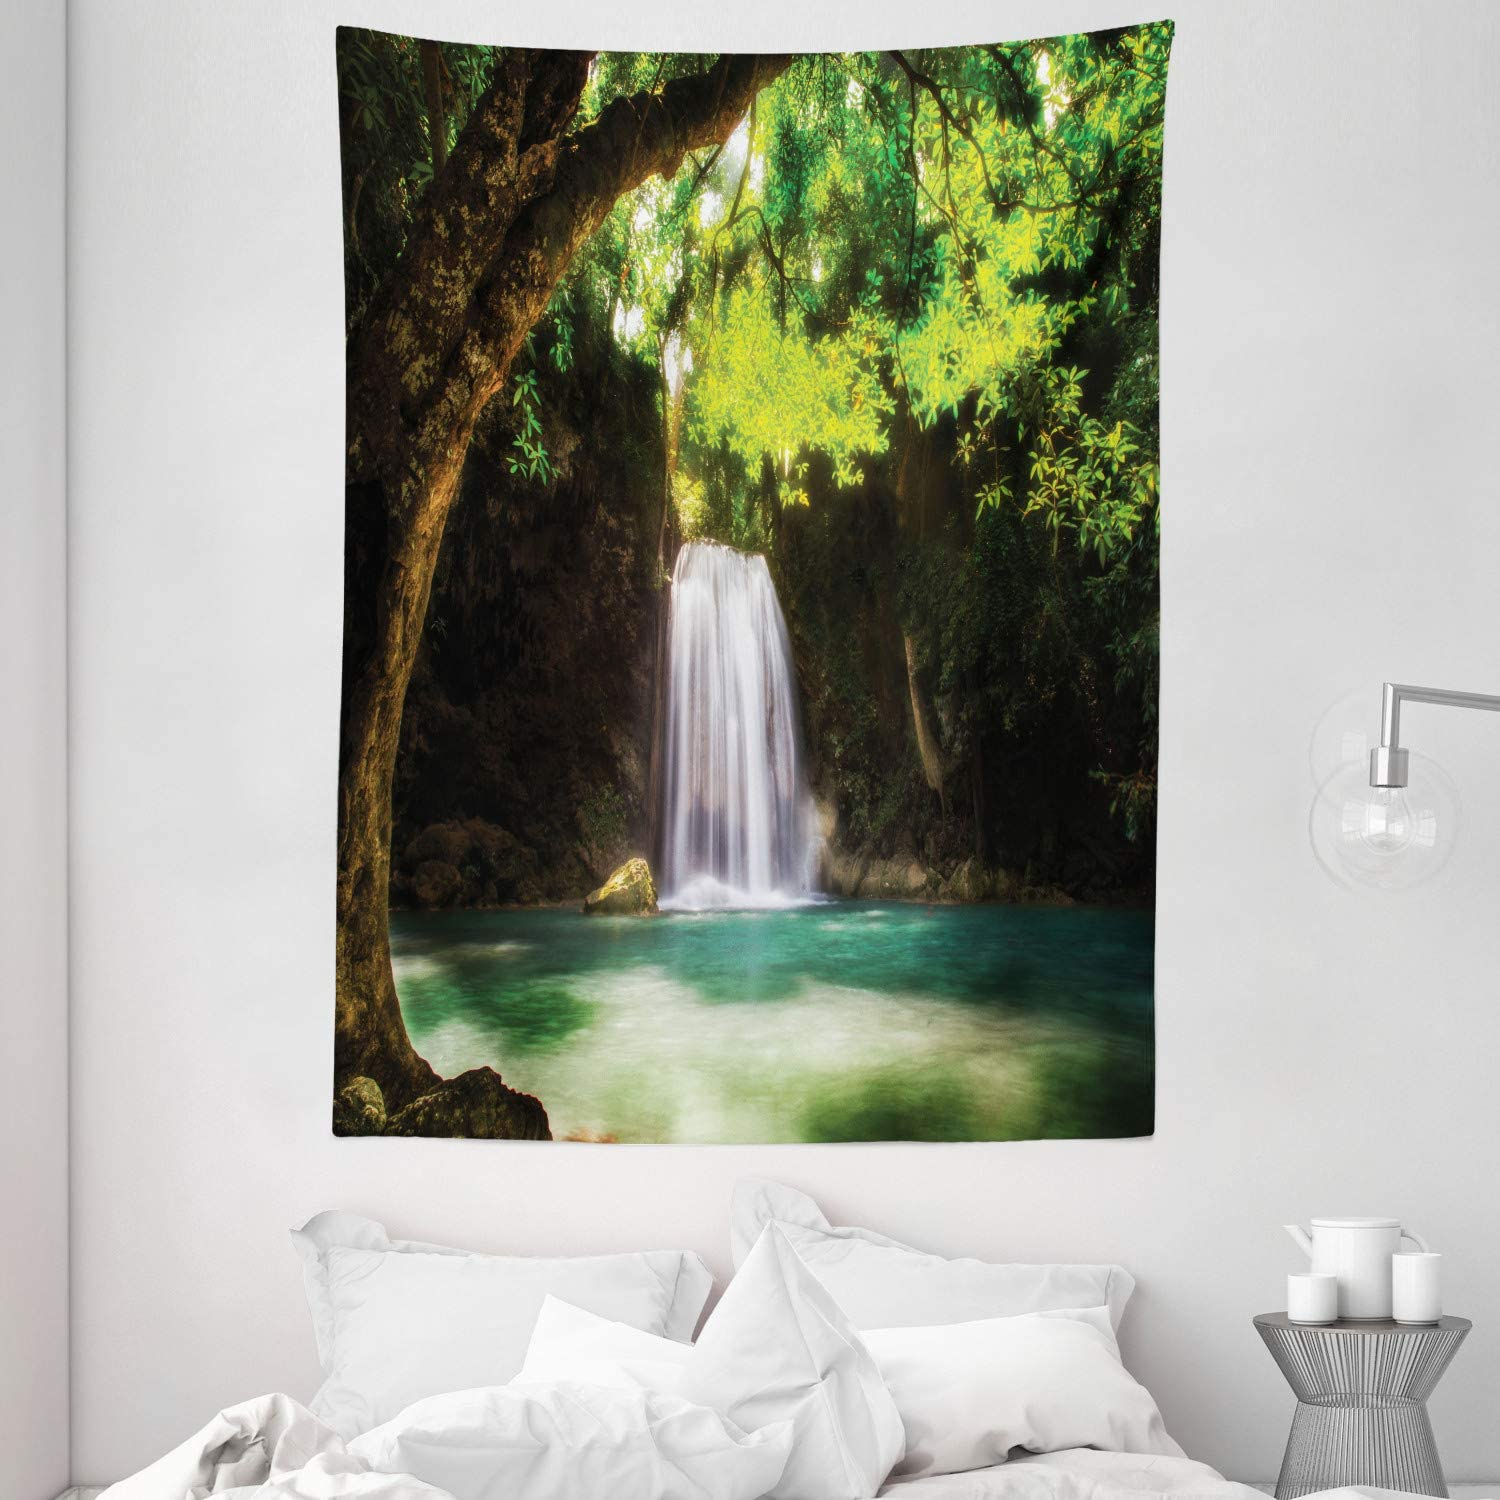 Autumn Forest Waterfall Tapestry For Living Room Bedroom Dorm Wall Hanging Rug